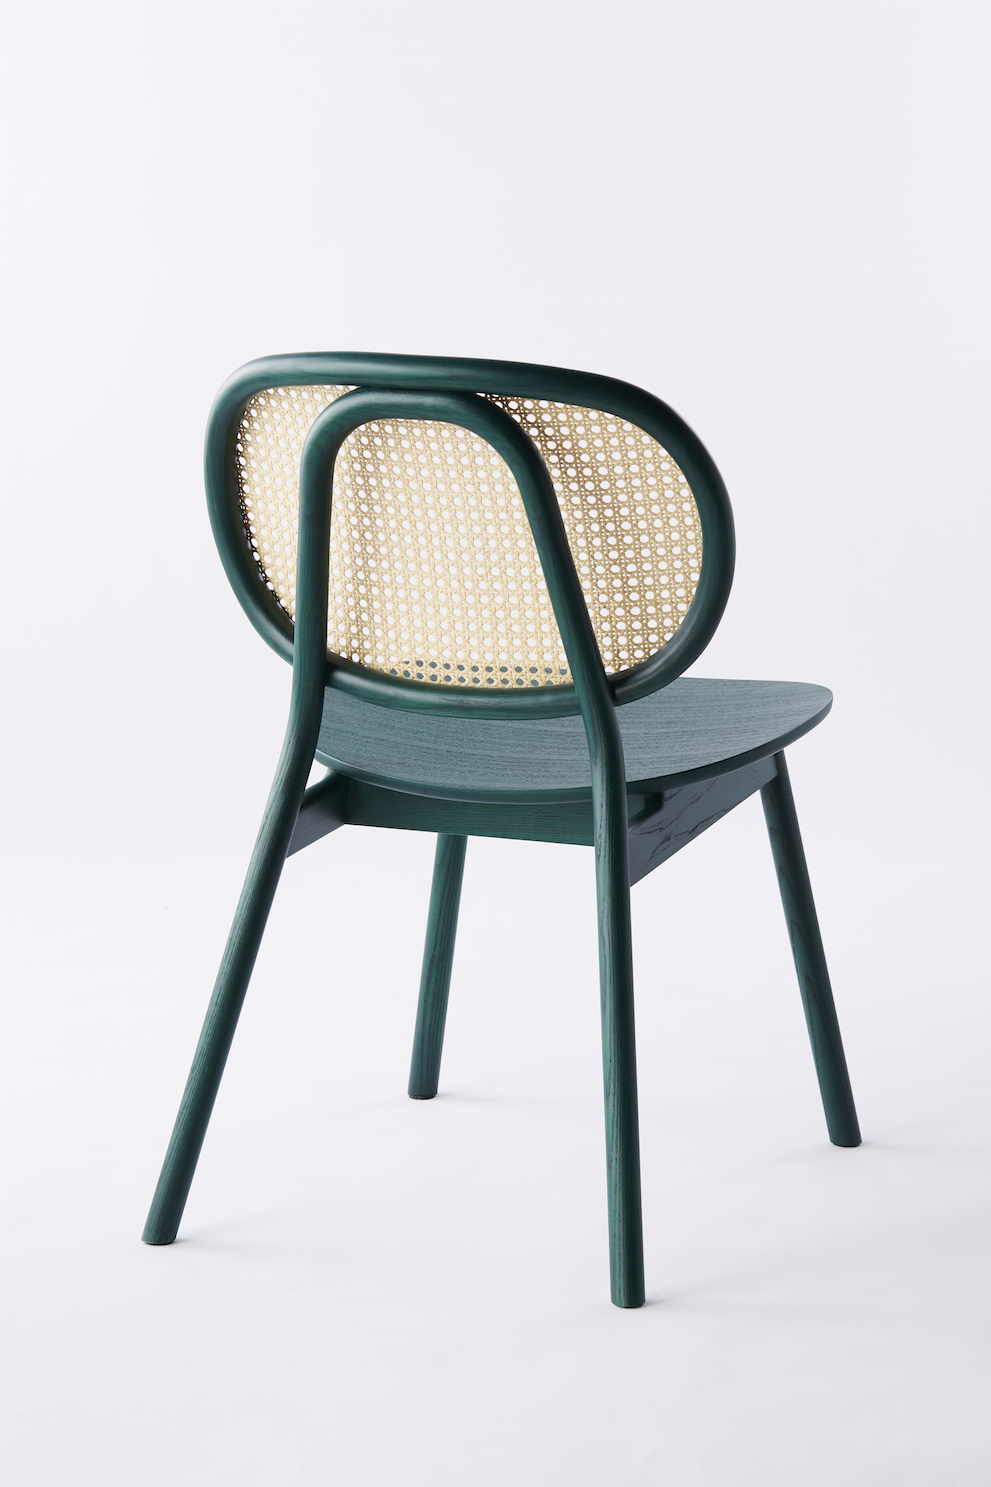 Cane_Side Chair 2018_01_G_613 copy.jpg